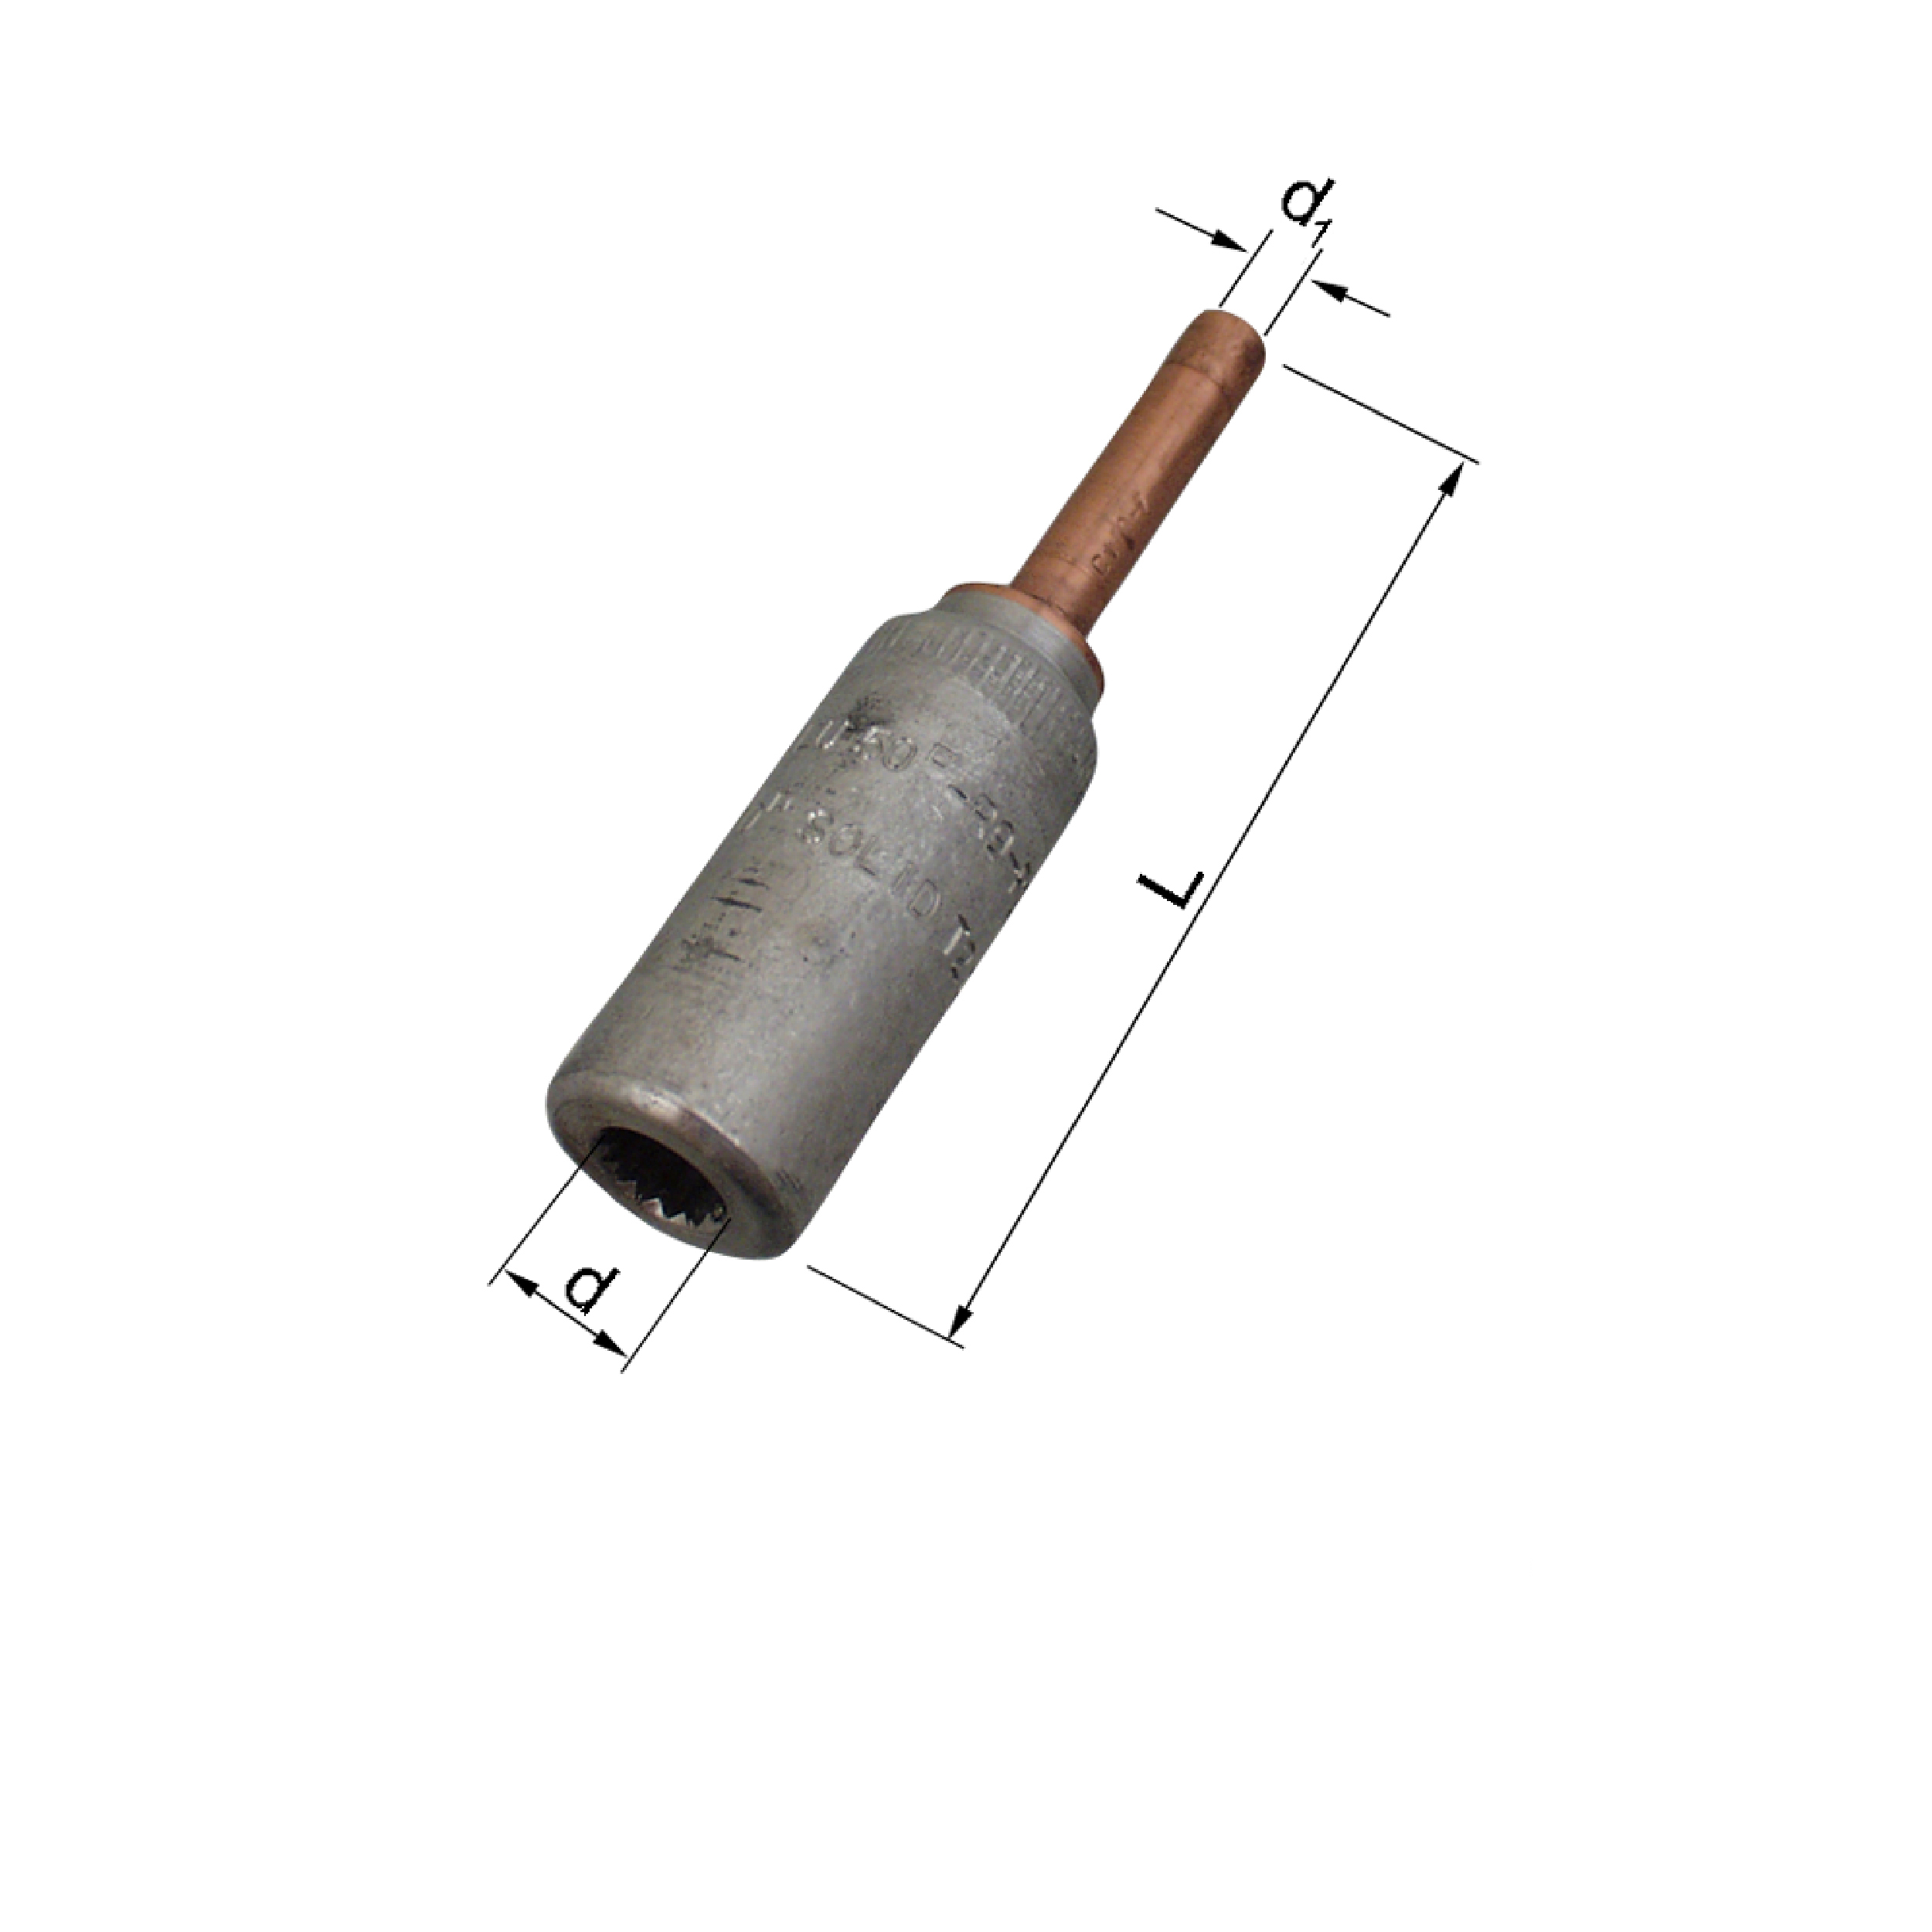 Elpress AKS Transition Connectors for Al to solid Cu Conductors (16-95mm² to 10mm²) AKS25-10S, AKS50-10S